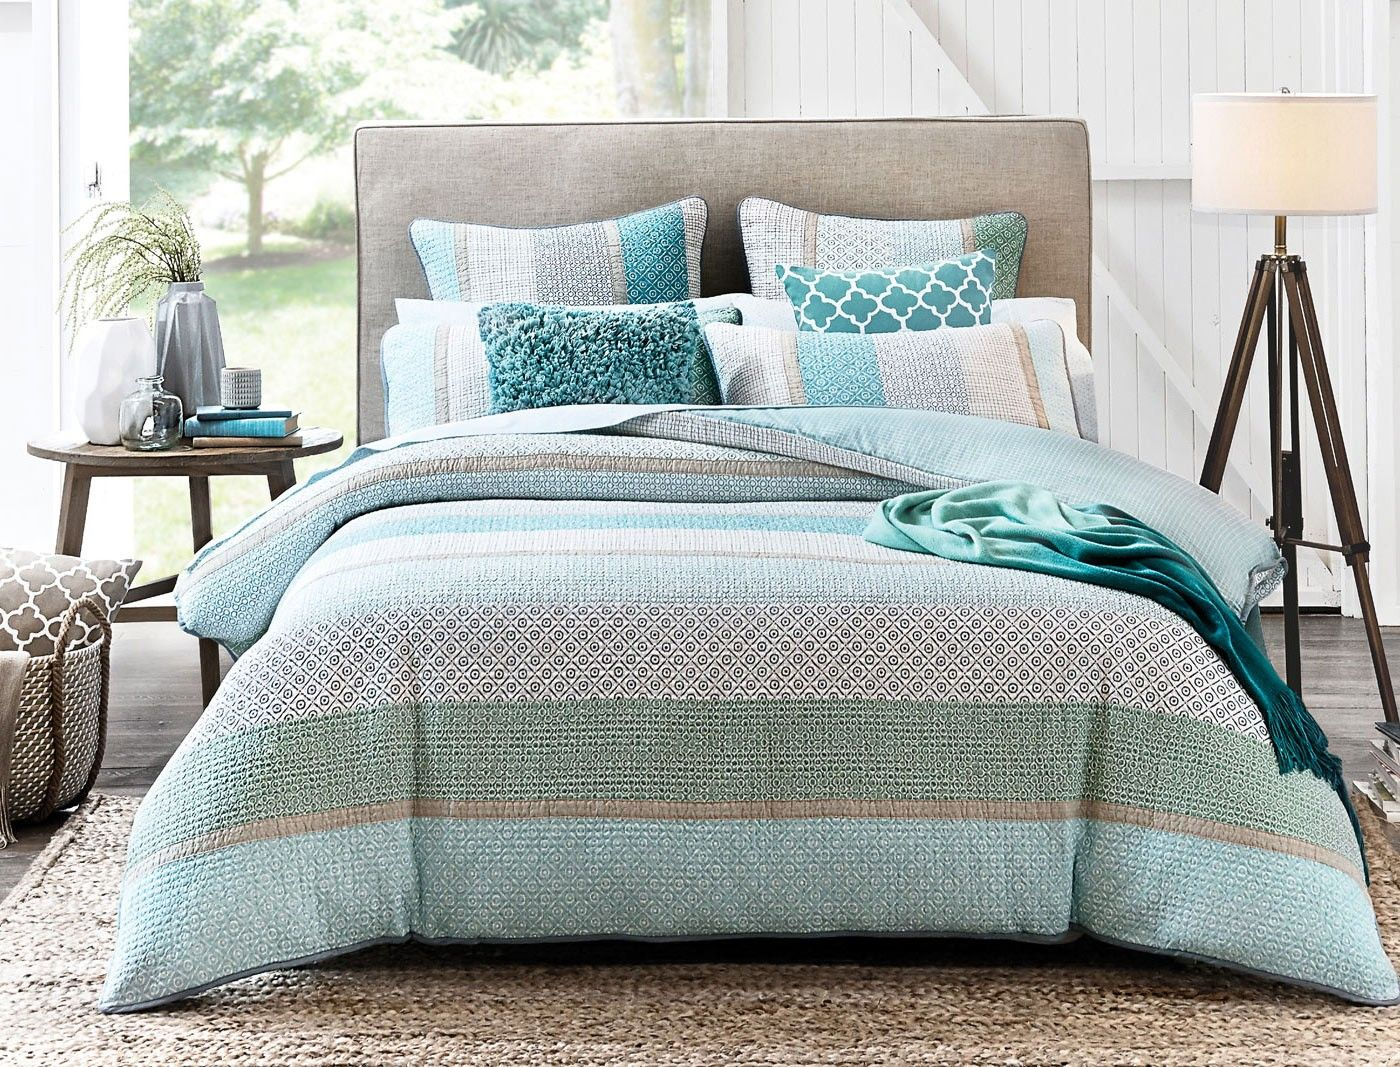 Bed Bath N' Table | 床品 | Pinterest | Quilt cover, Bedrooms and ... : bed and bath quilts - Adamdwight.com